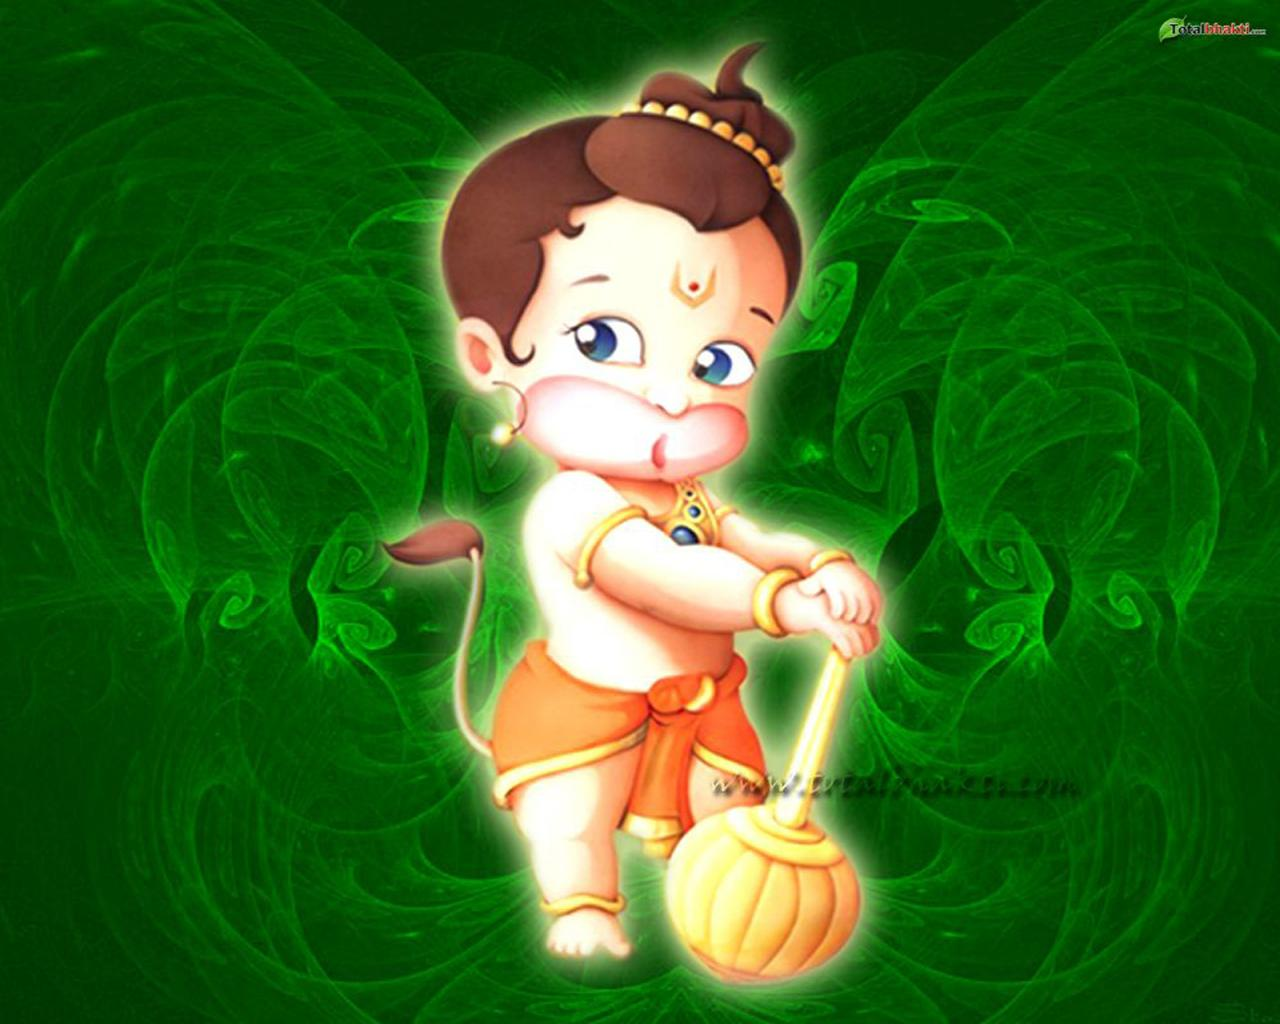 Lord Hanuman Angry Animated Wallpapers Hd Posted By Sarah Anderson